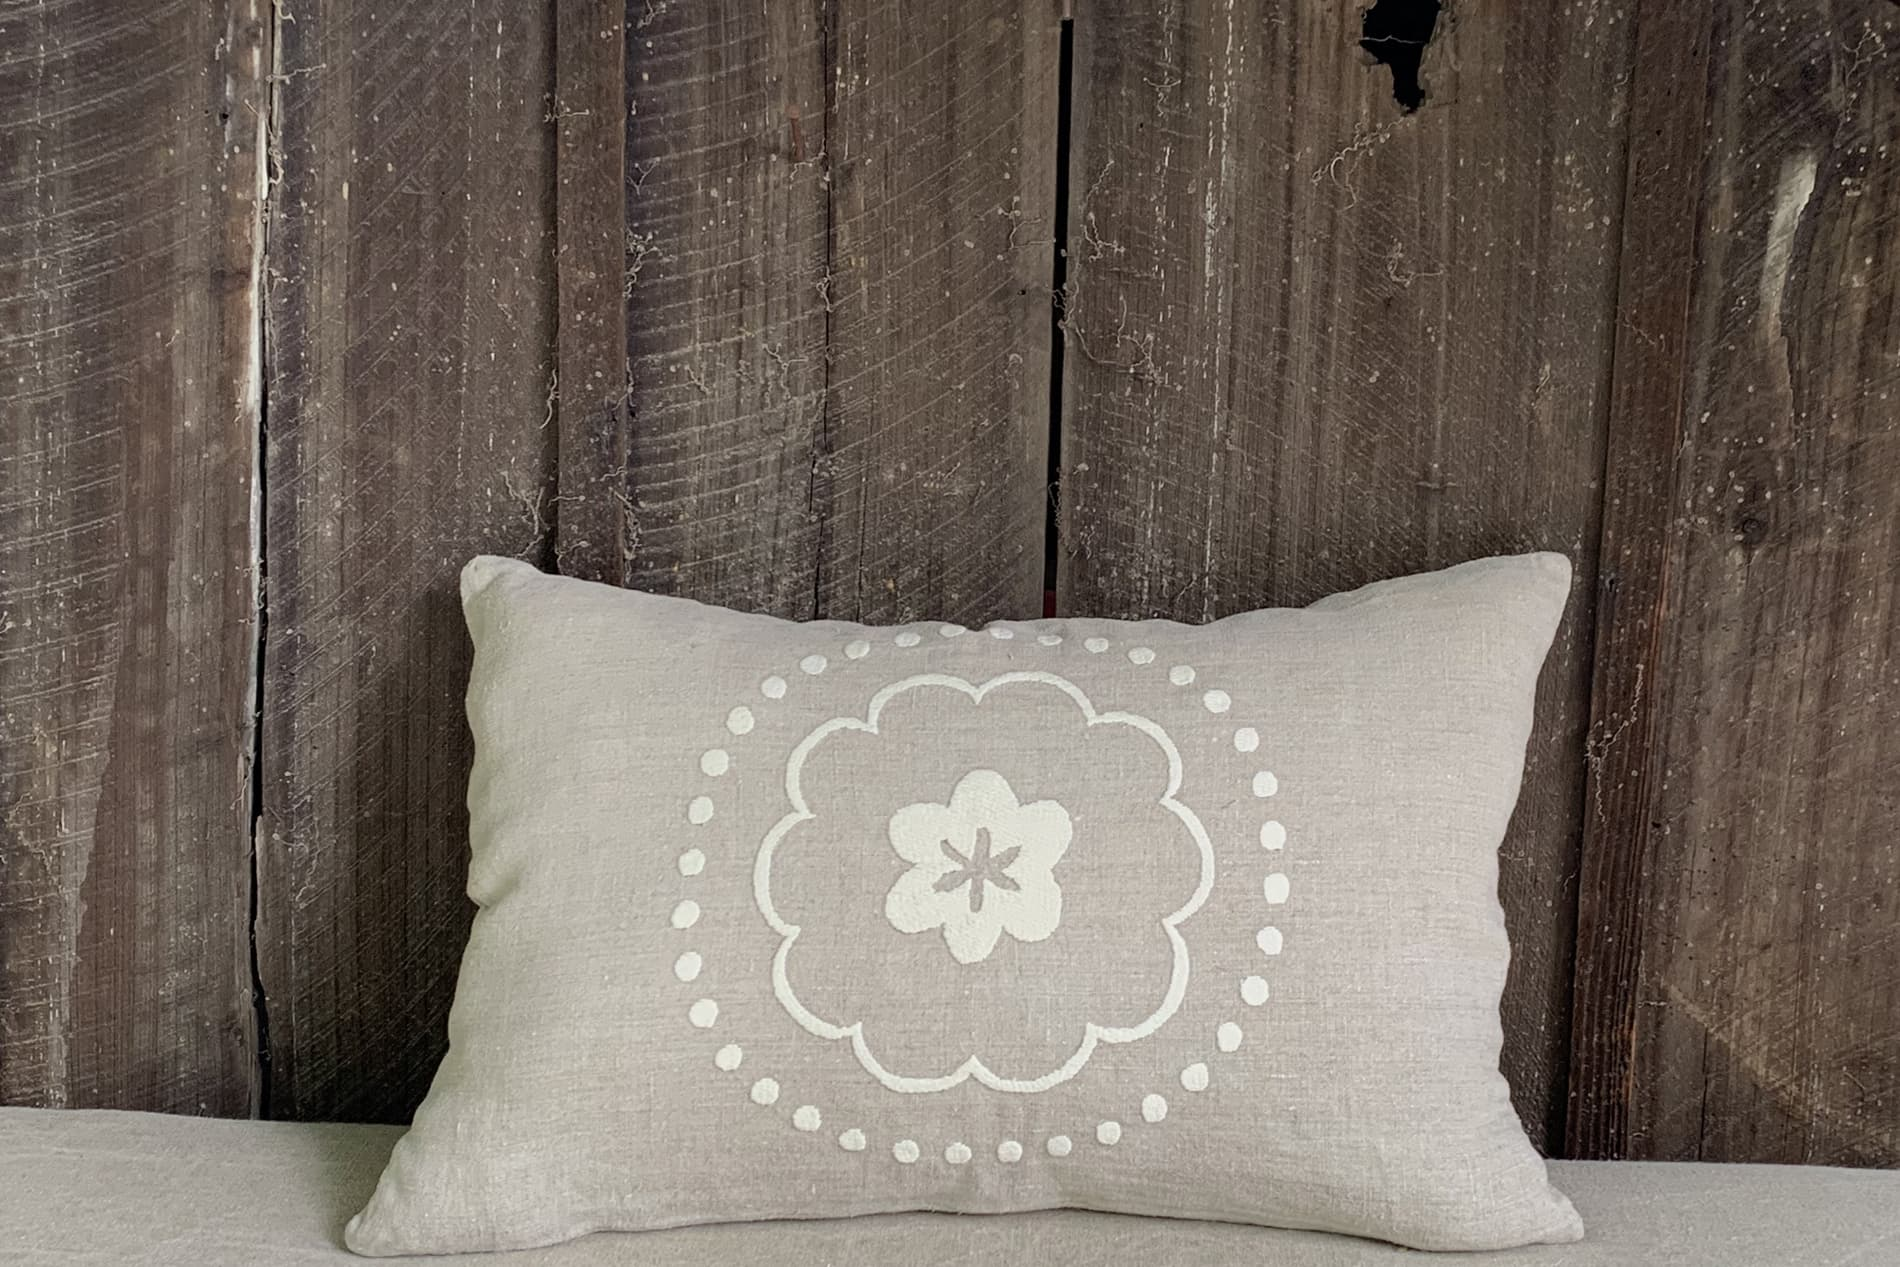 coussin style campagne chic en lin brodé